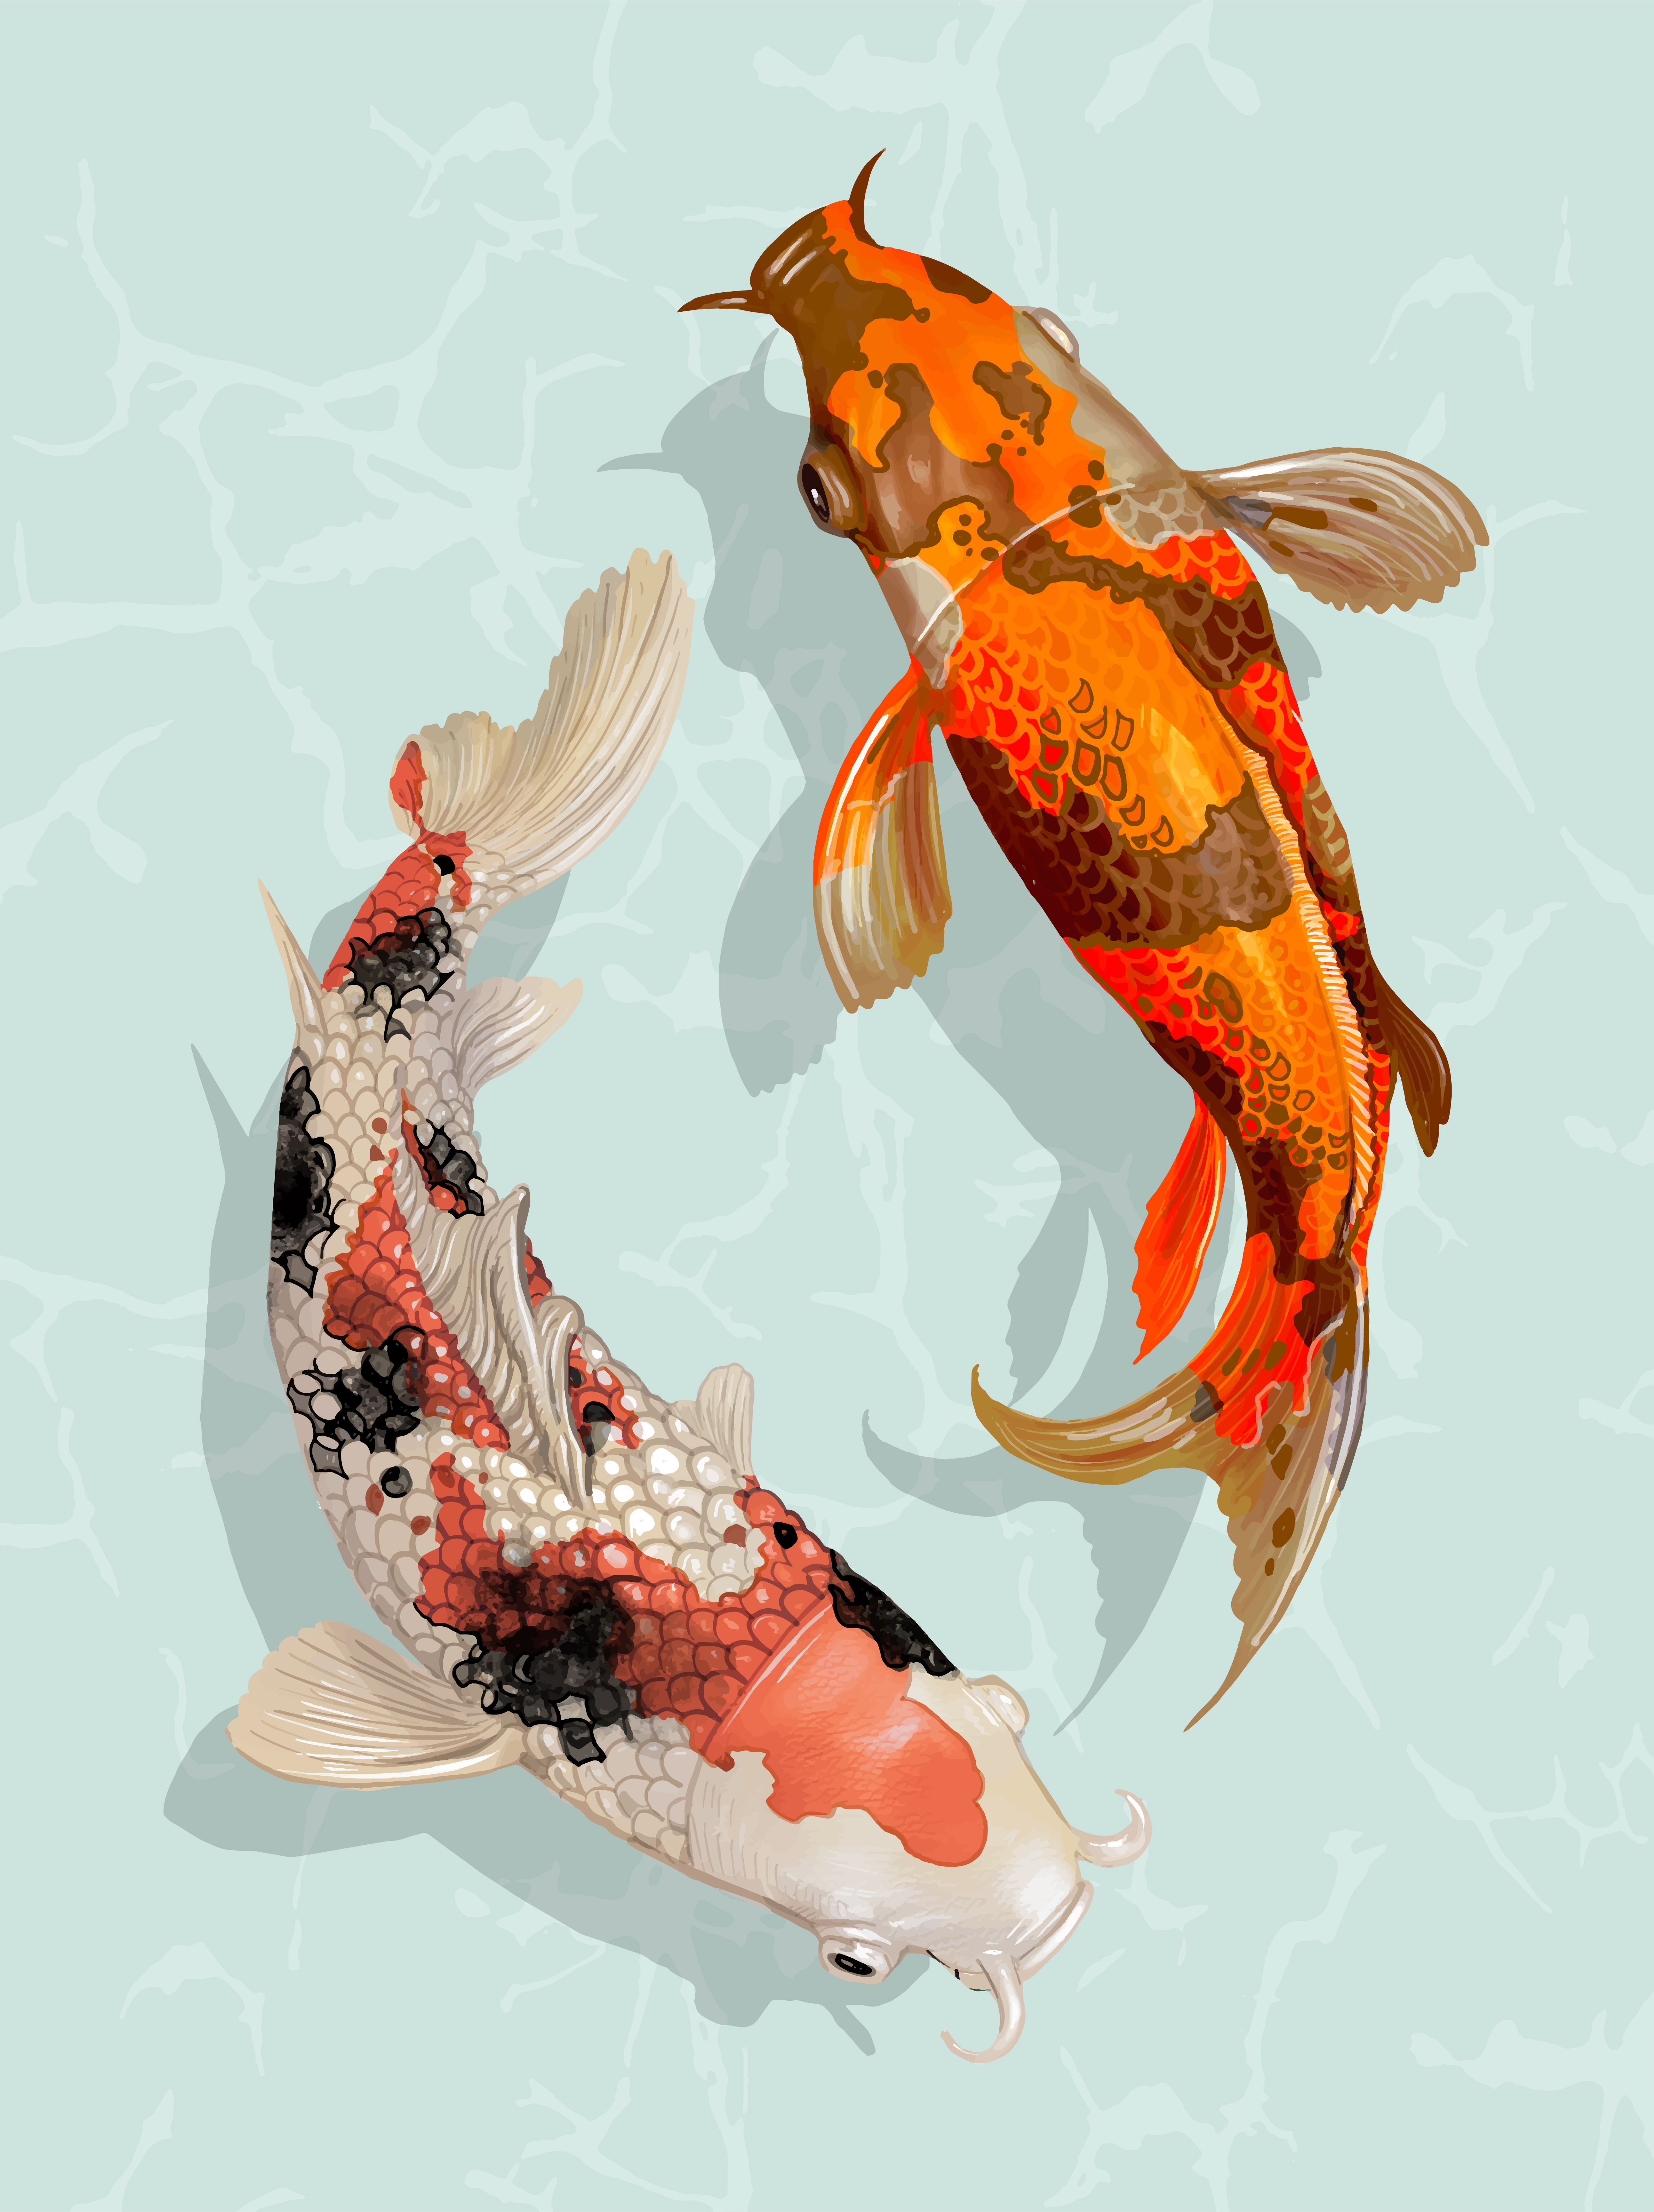 shawn morrissey - 24 x 36 Asian Japanese Koi F.. | Koi art ... |Japanese Koi Painting